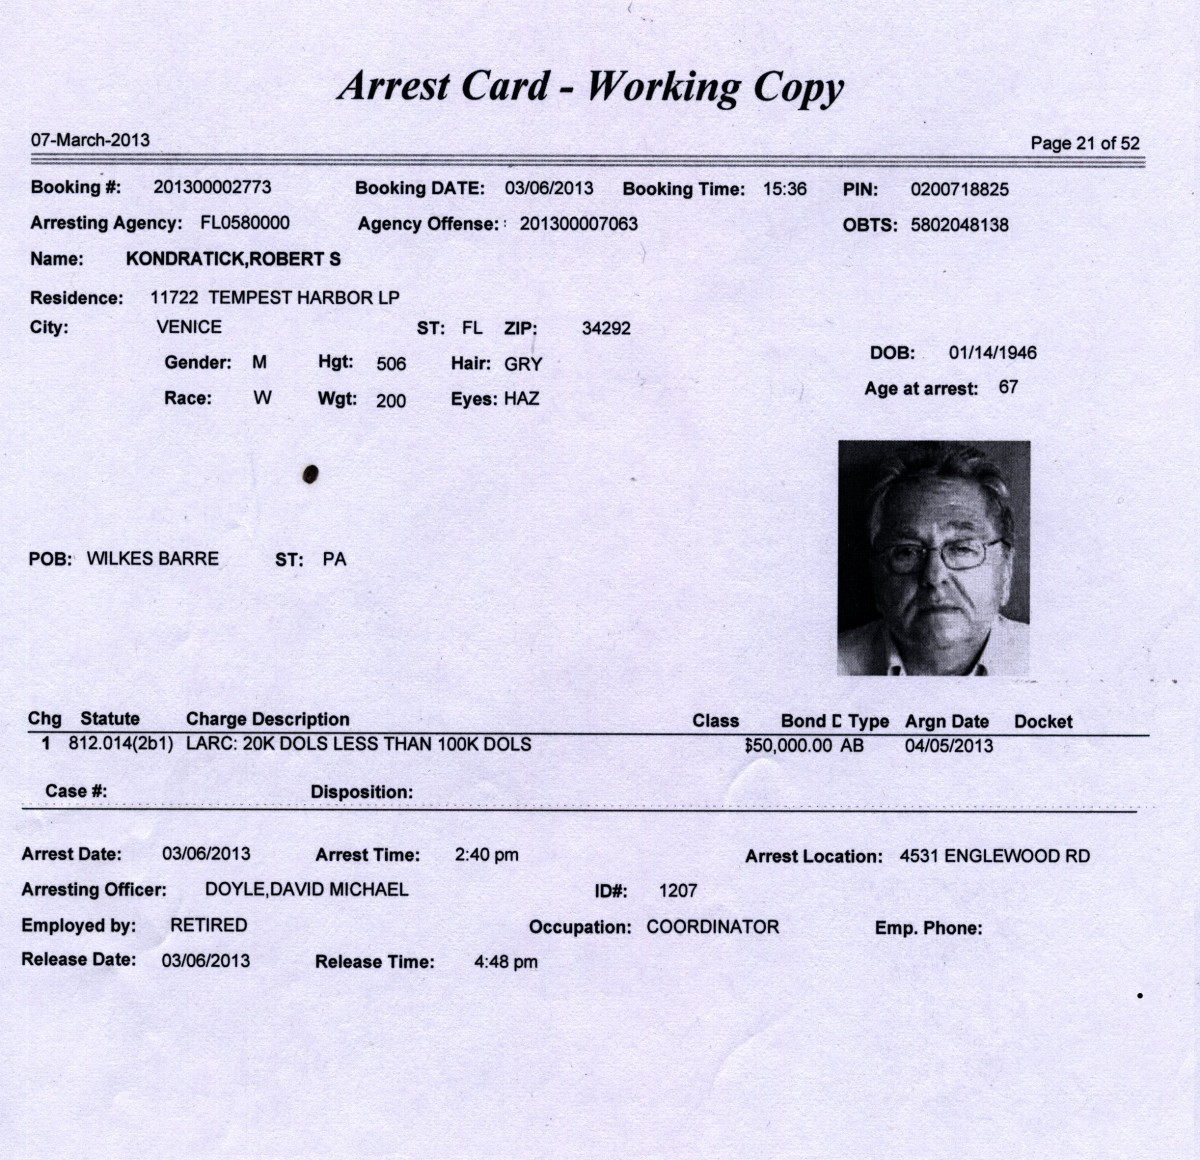 00 Bobby K arrest card. 15.03.13